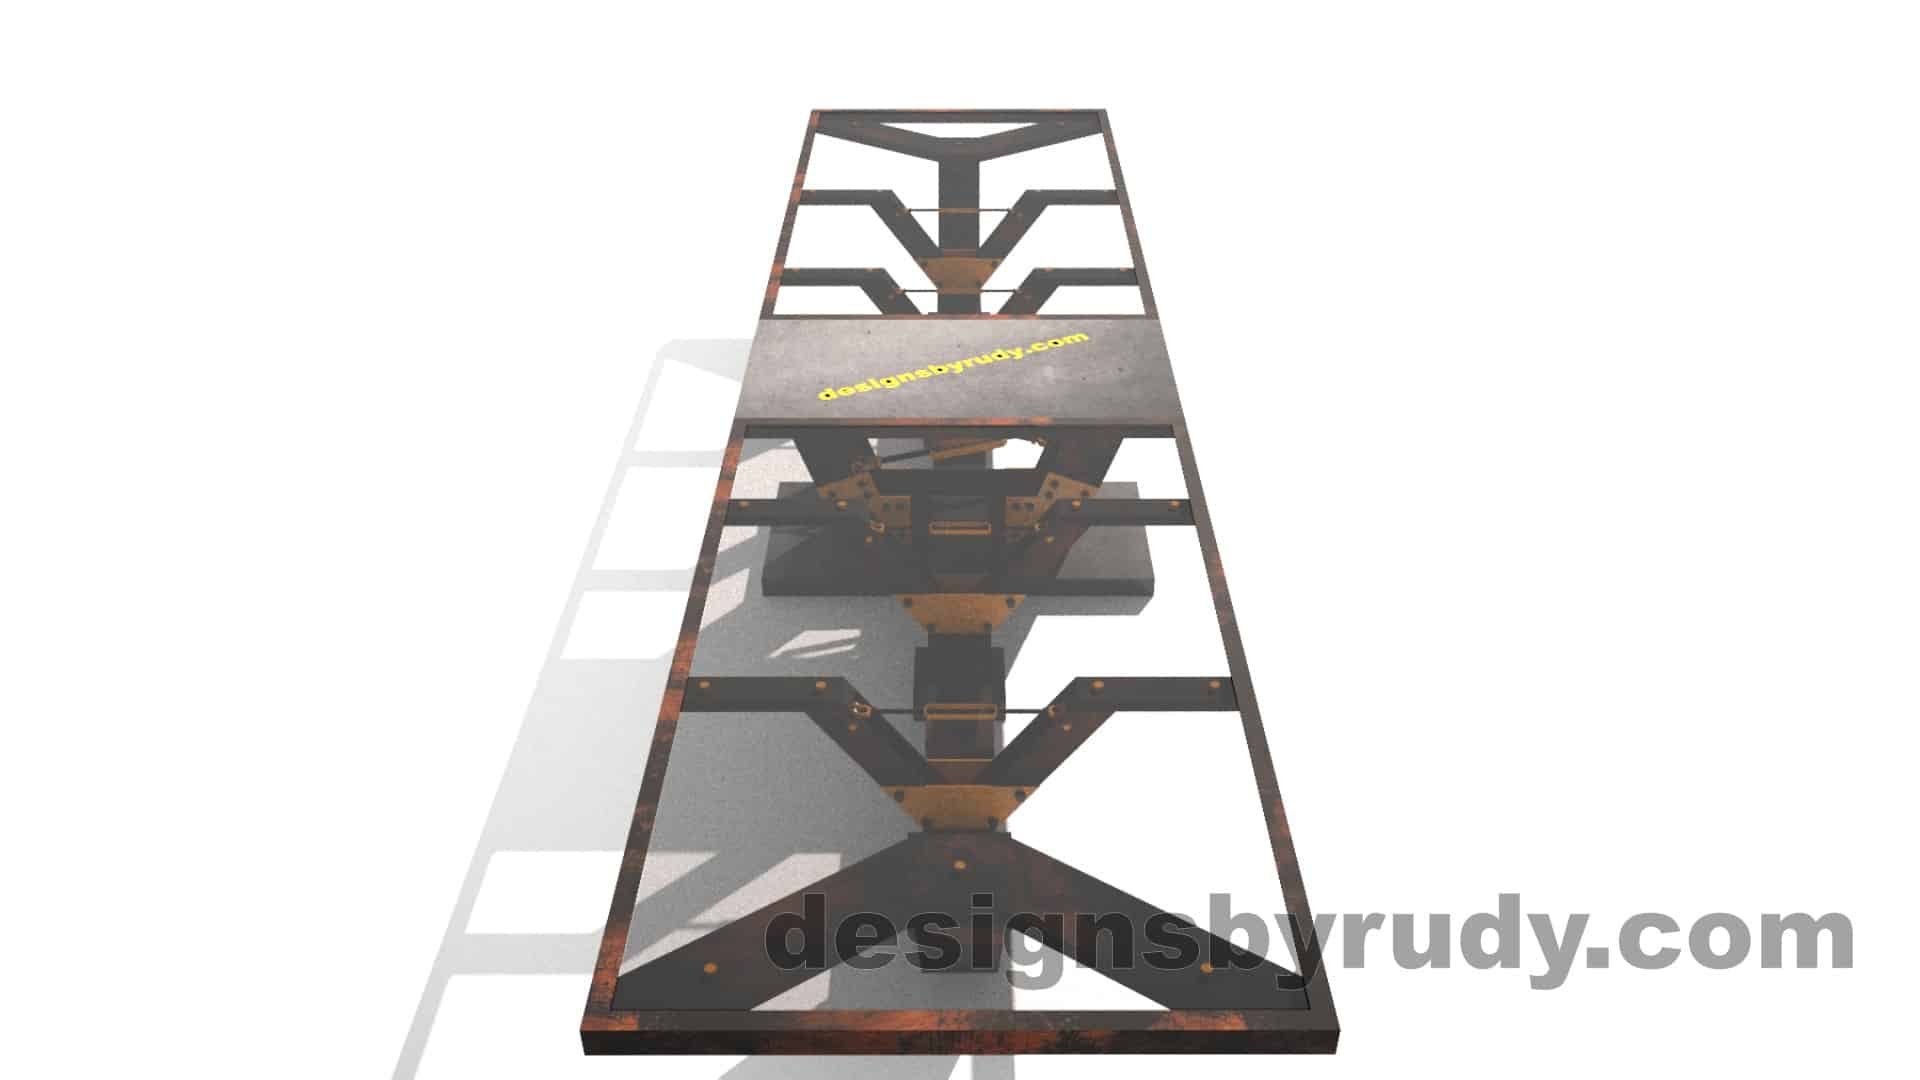 Glass, steel, concrete conference table design by Designs by Rudy 10